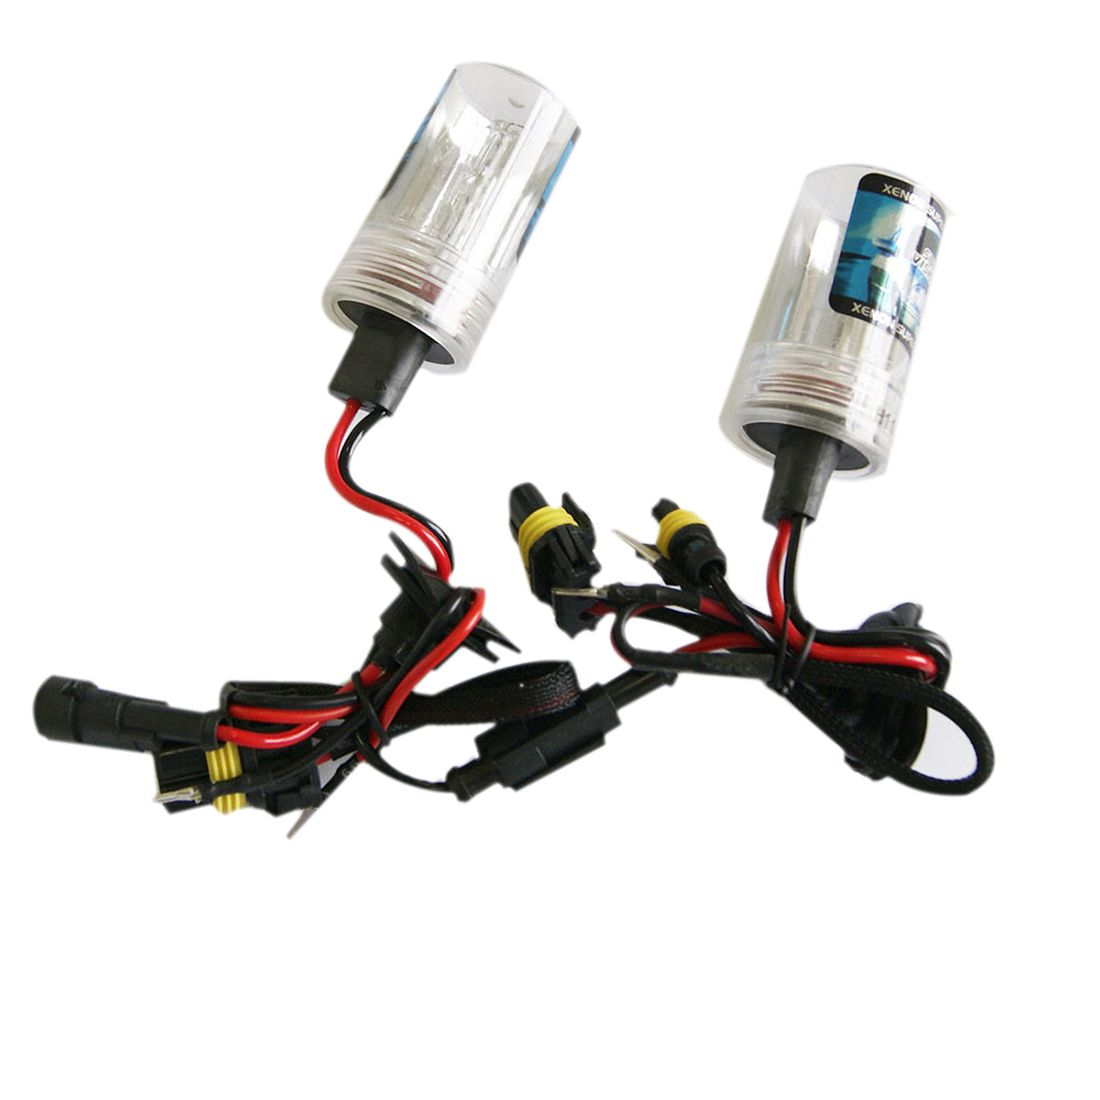 Tonewan Hotsale new Brand Promotions Double Lamp 12v 55W H8/H9/H11 Xenon LED Fog Tail Turn Head Bulb